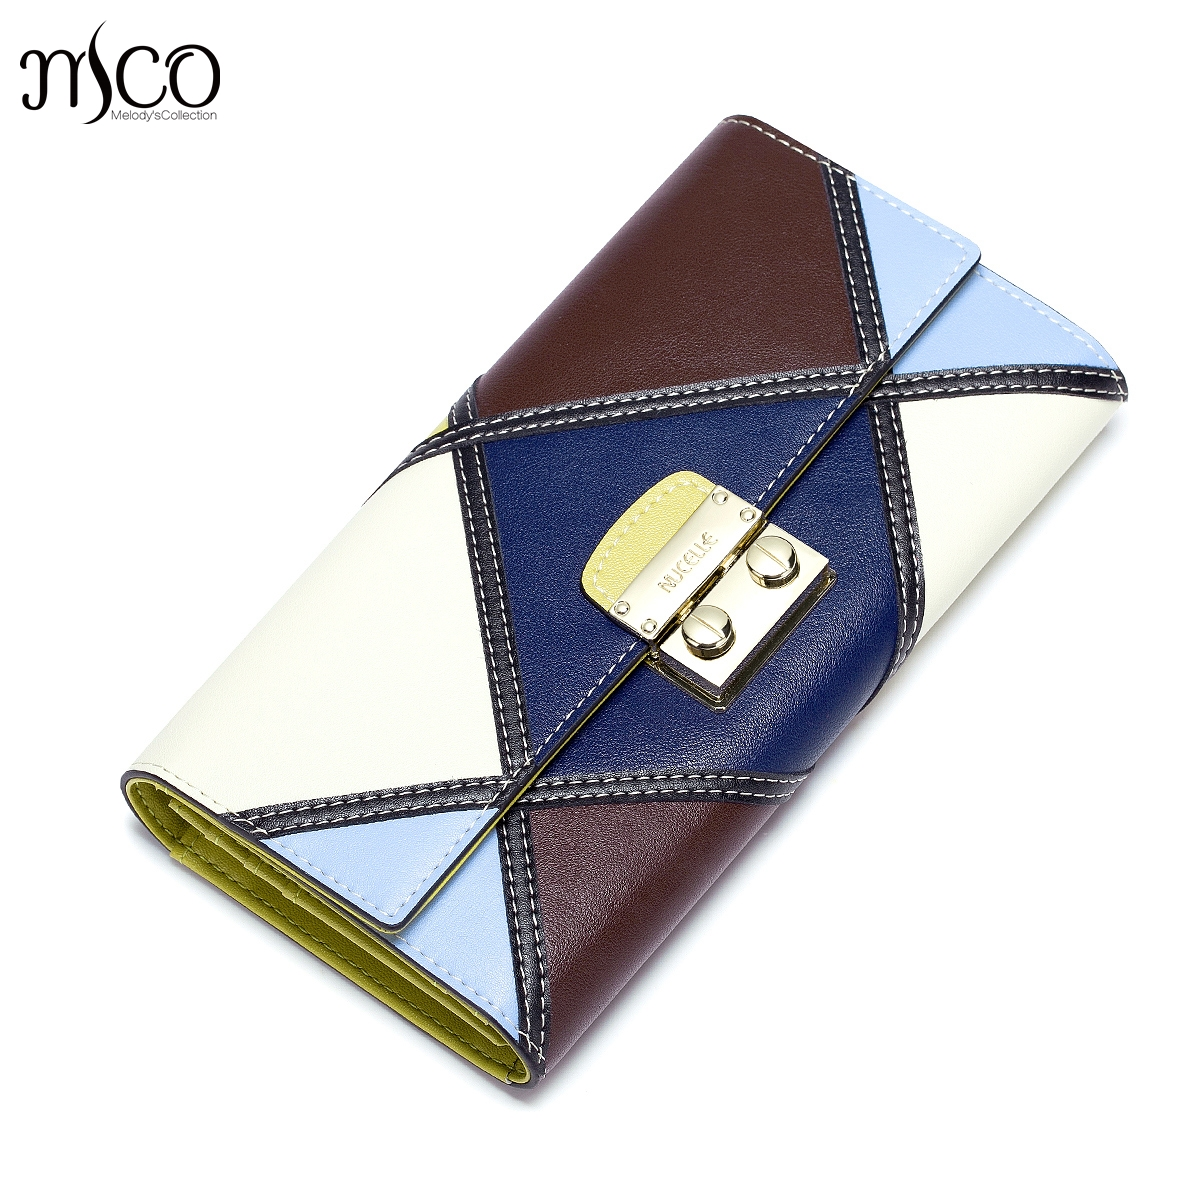 Genuine Leather Women Wallets Female Fashion Patchwork Cowhide Wallet Ladies Clutch Long Style Trifold Purse Money Clips<br>